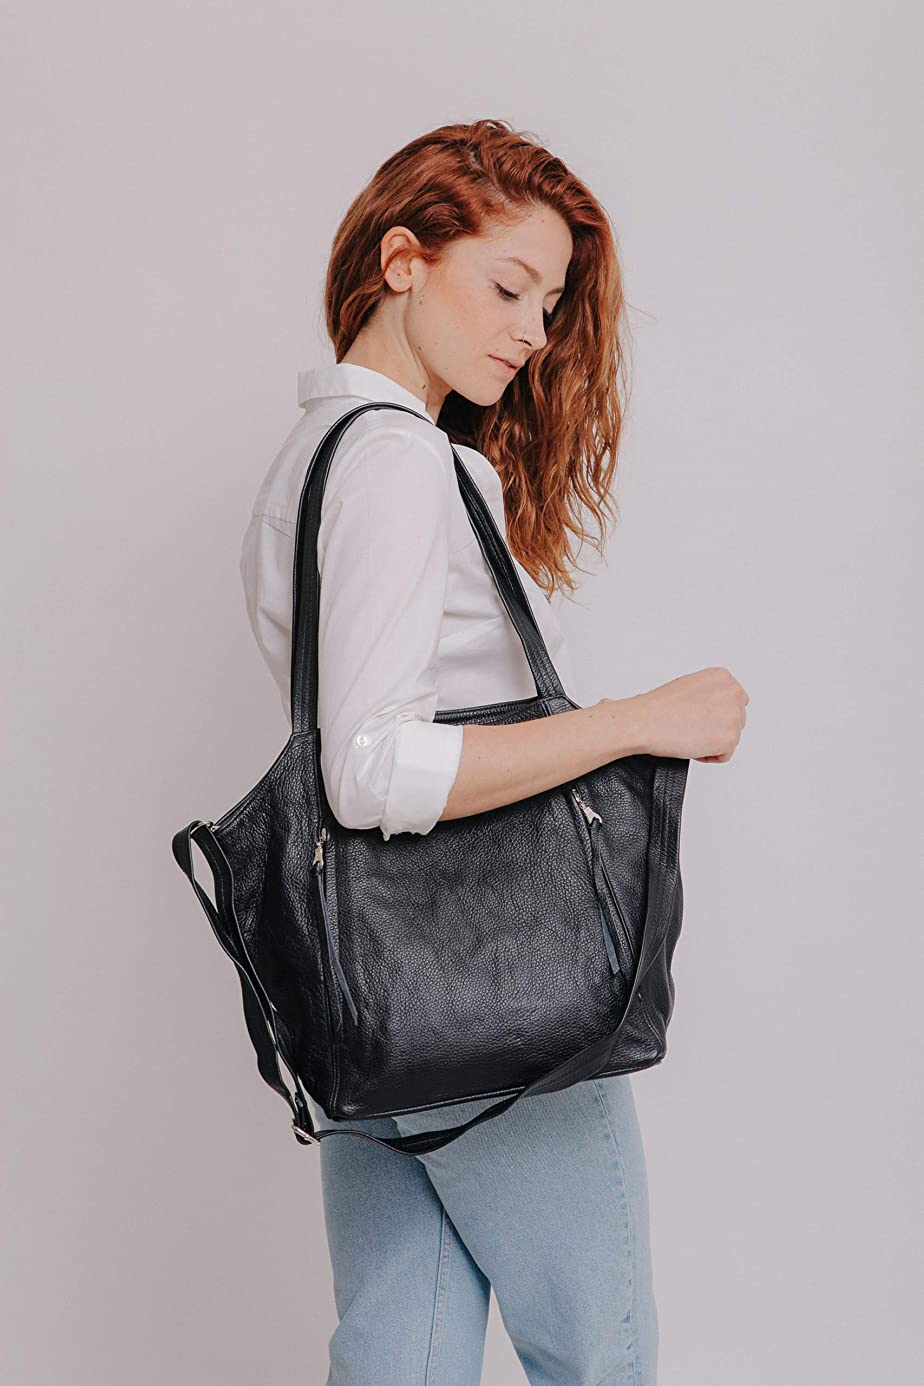 Women's Black Leather Crossbody, Tote and Shoulder Bag with Zippers, Handmade Large Trendy Office Bag, Everyday Casual Laptop Handbag Gift for Her bnl6080926